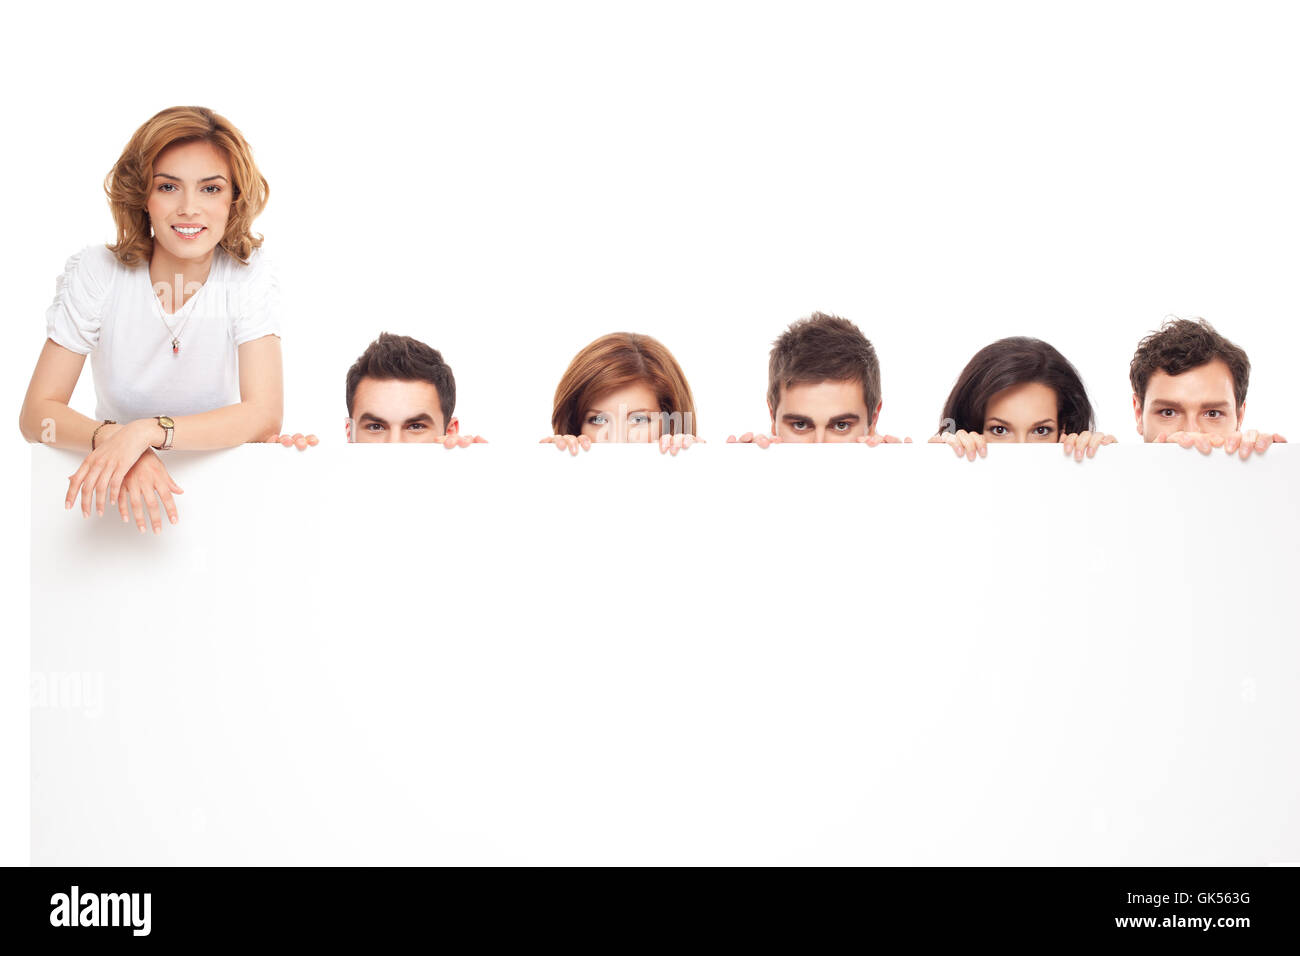 face banner advertise - Stock Image